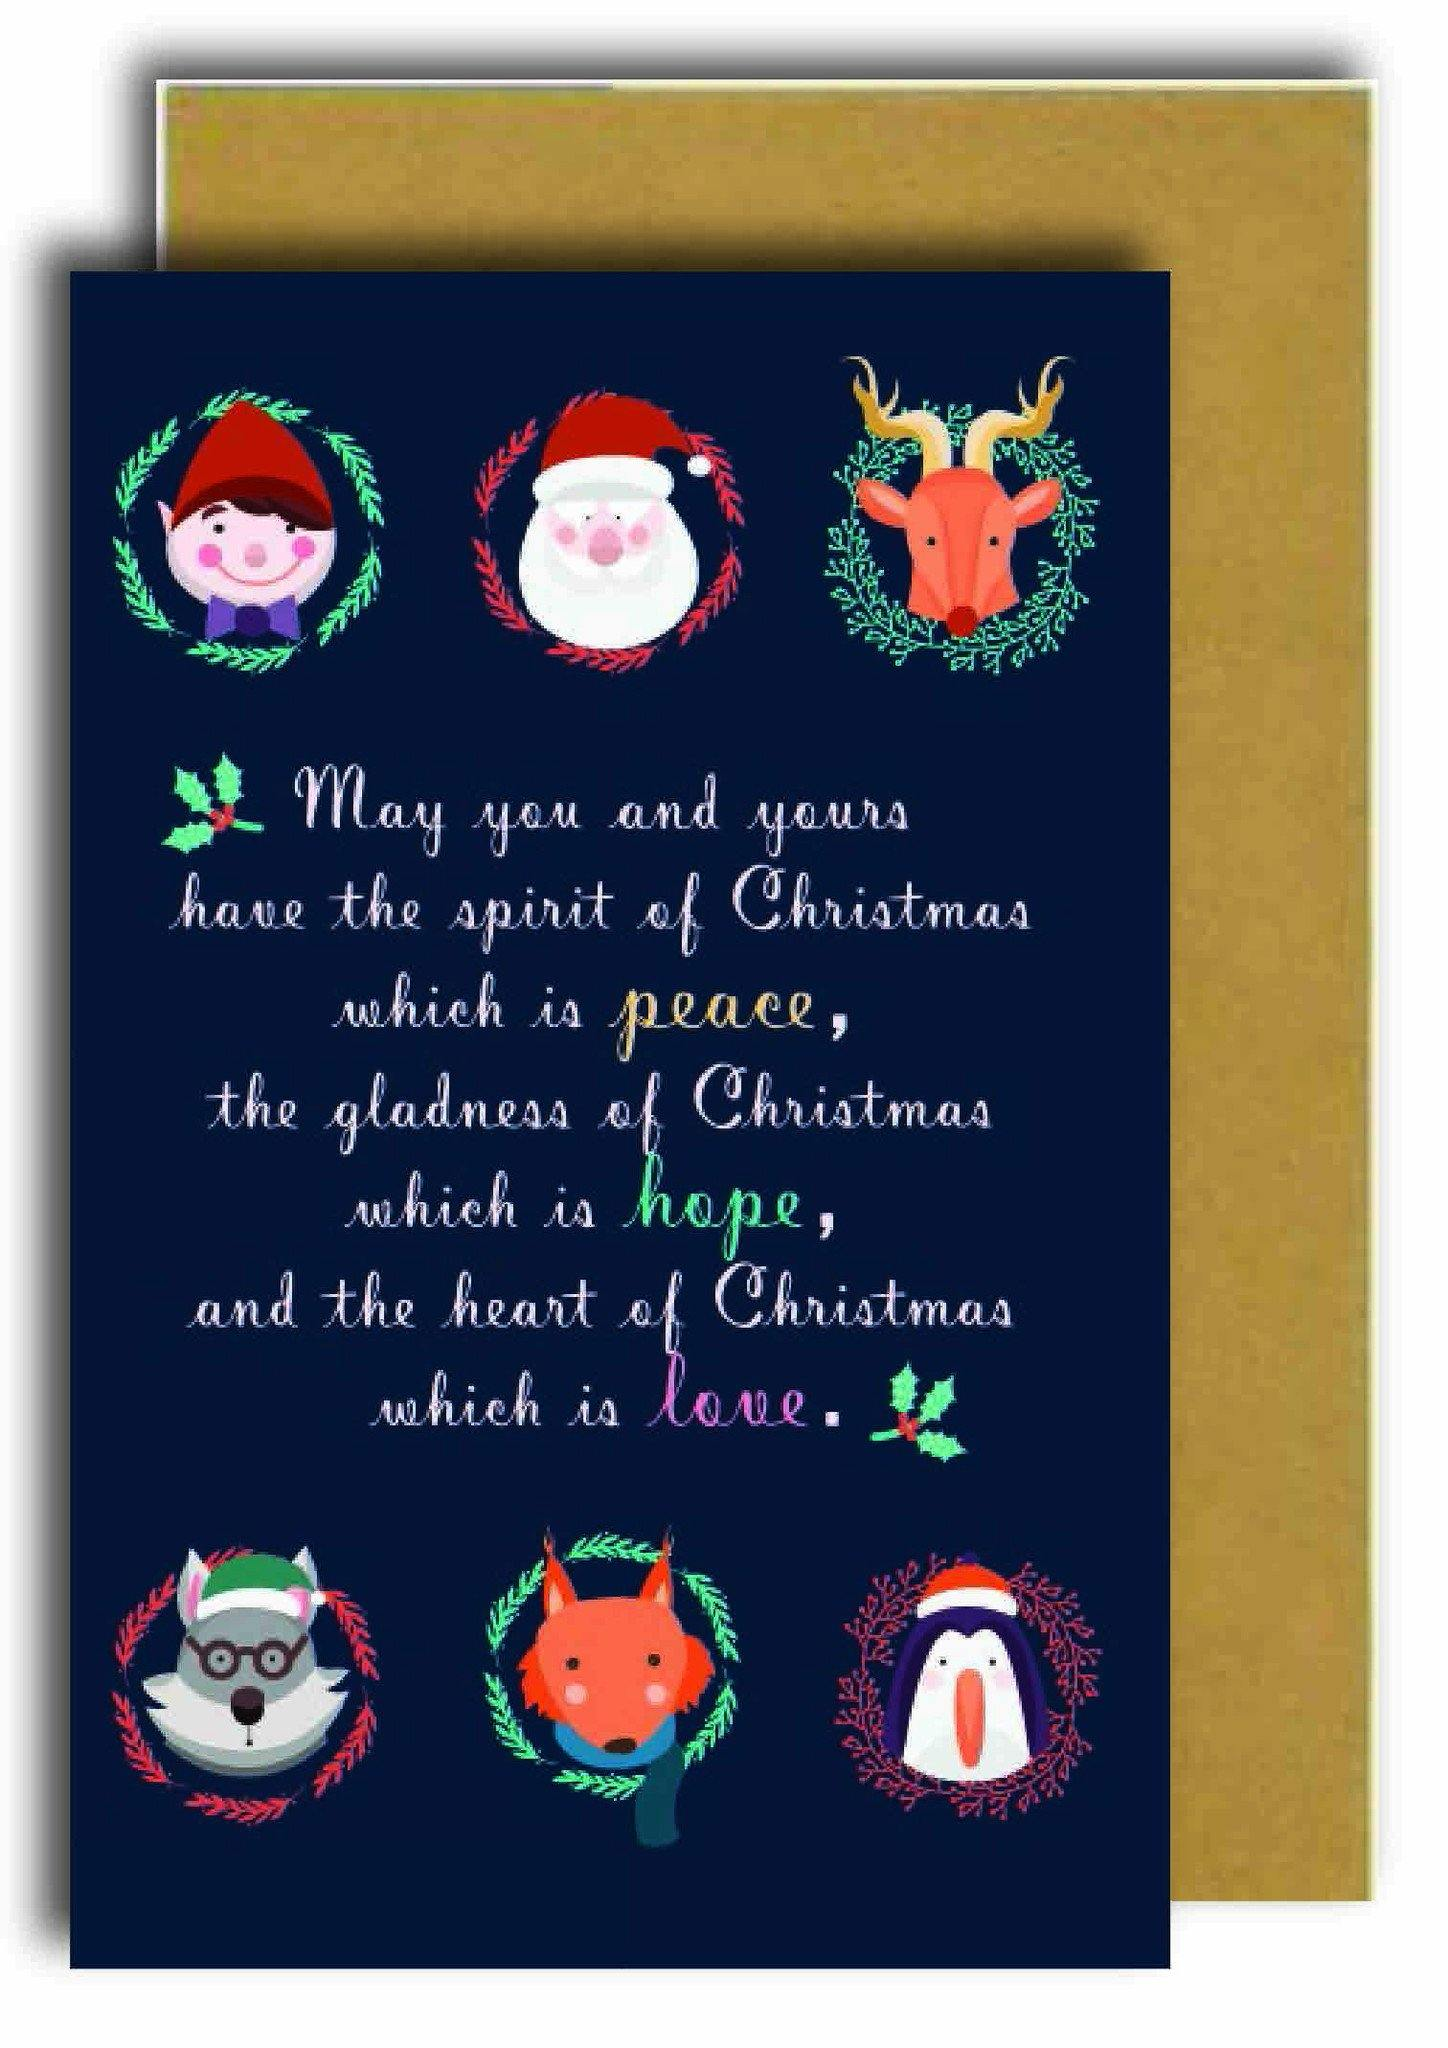 Peace - Hope - Love Greeting Card - Generic Greeting Cards - Papermix - Naiise